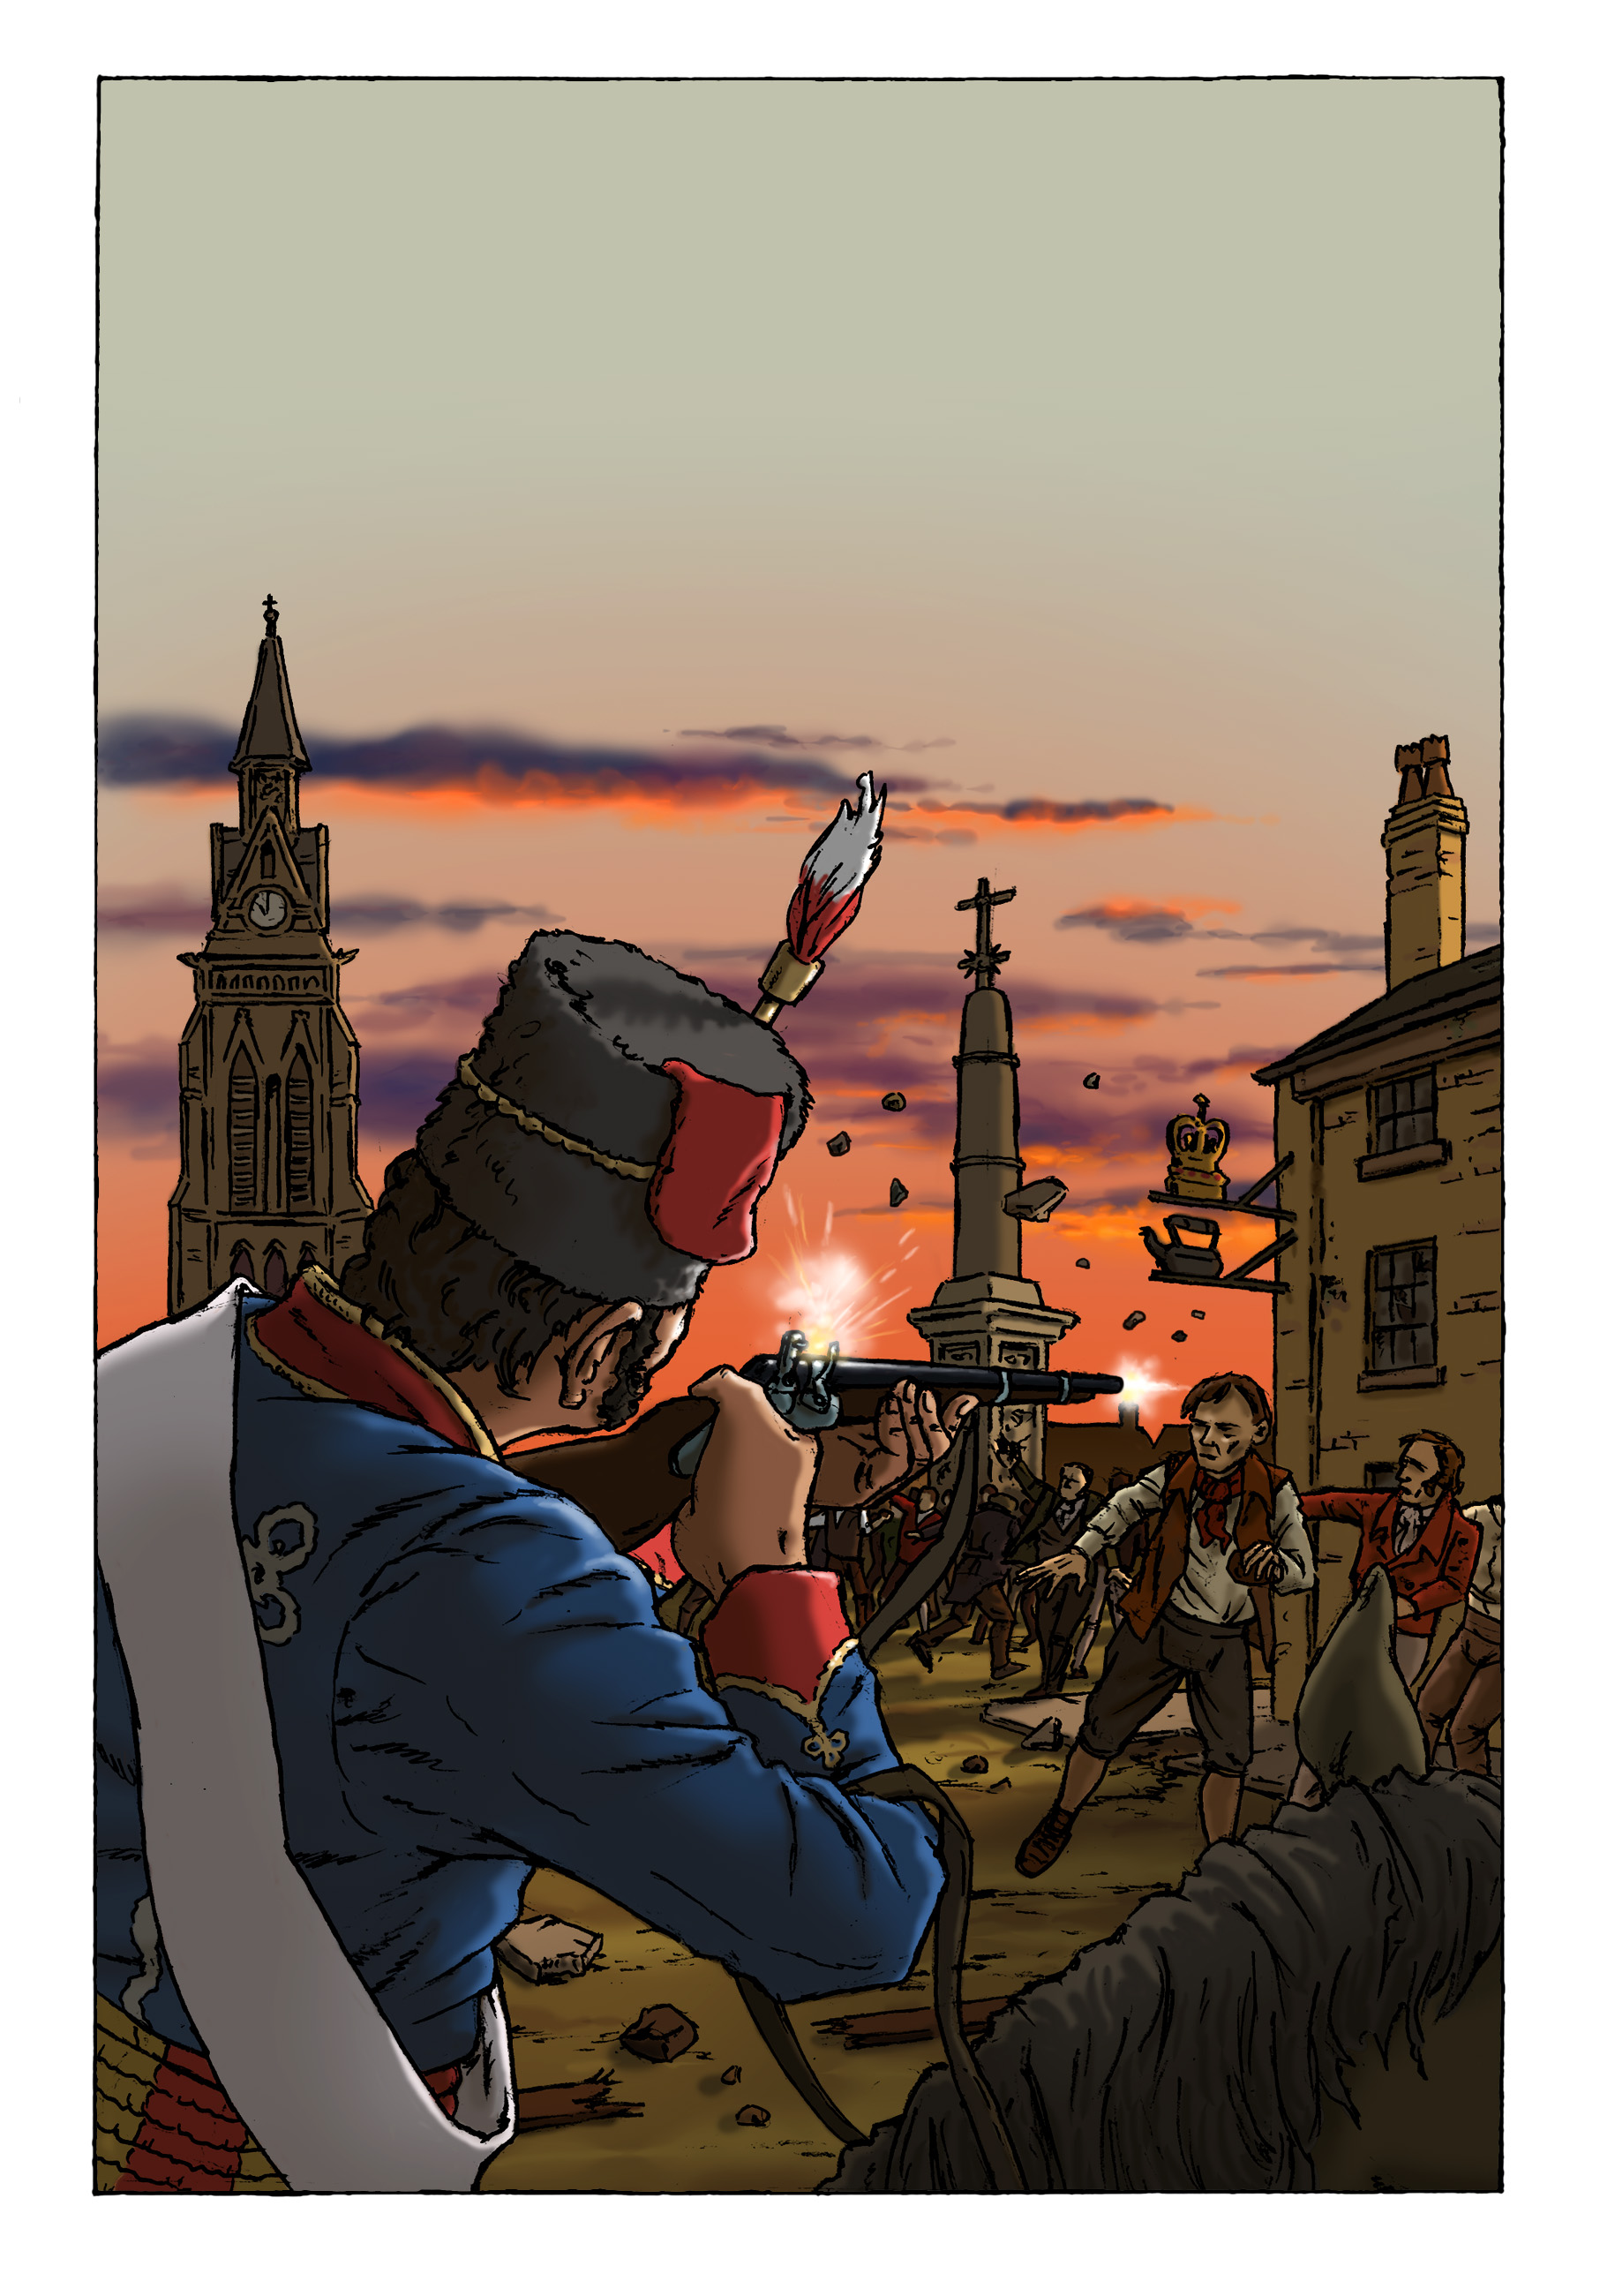 16 Aug evening. P74 - Peterloo Graphic Novel.